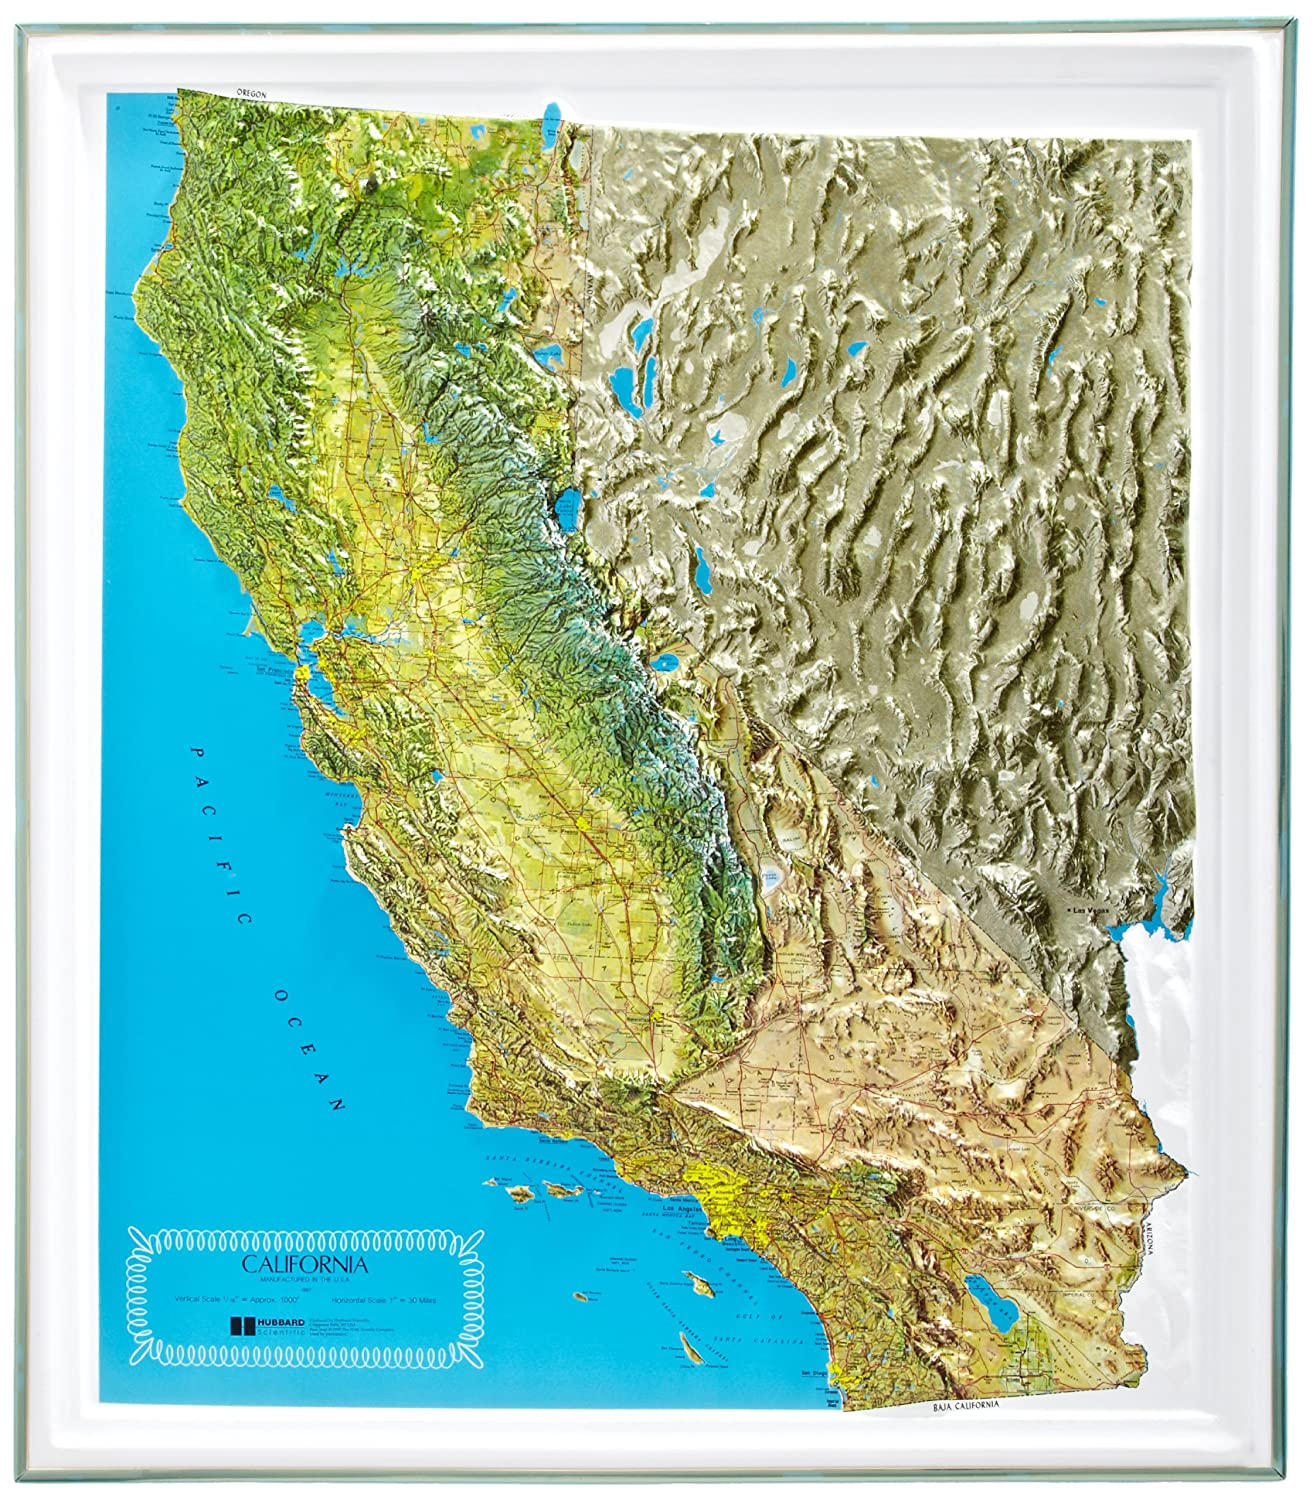 American Educational California NCR Series Map with Gold Plastic Frame 25-1//2 Length x 22-1//2 Width